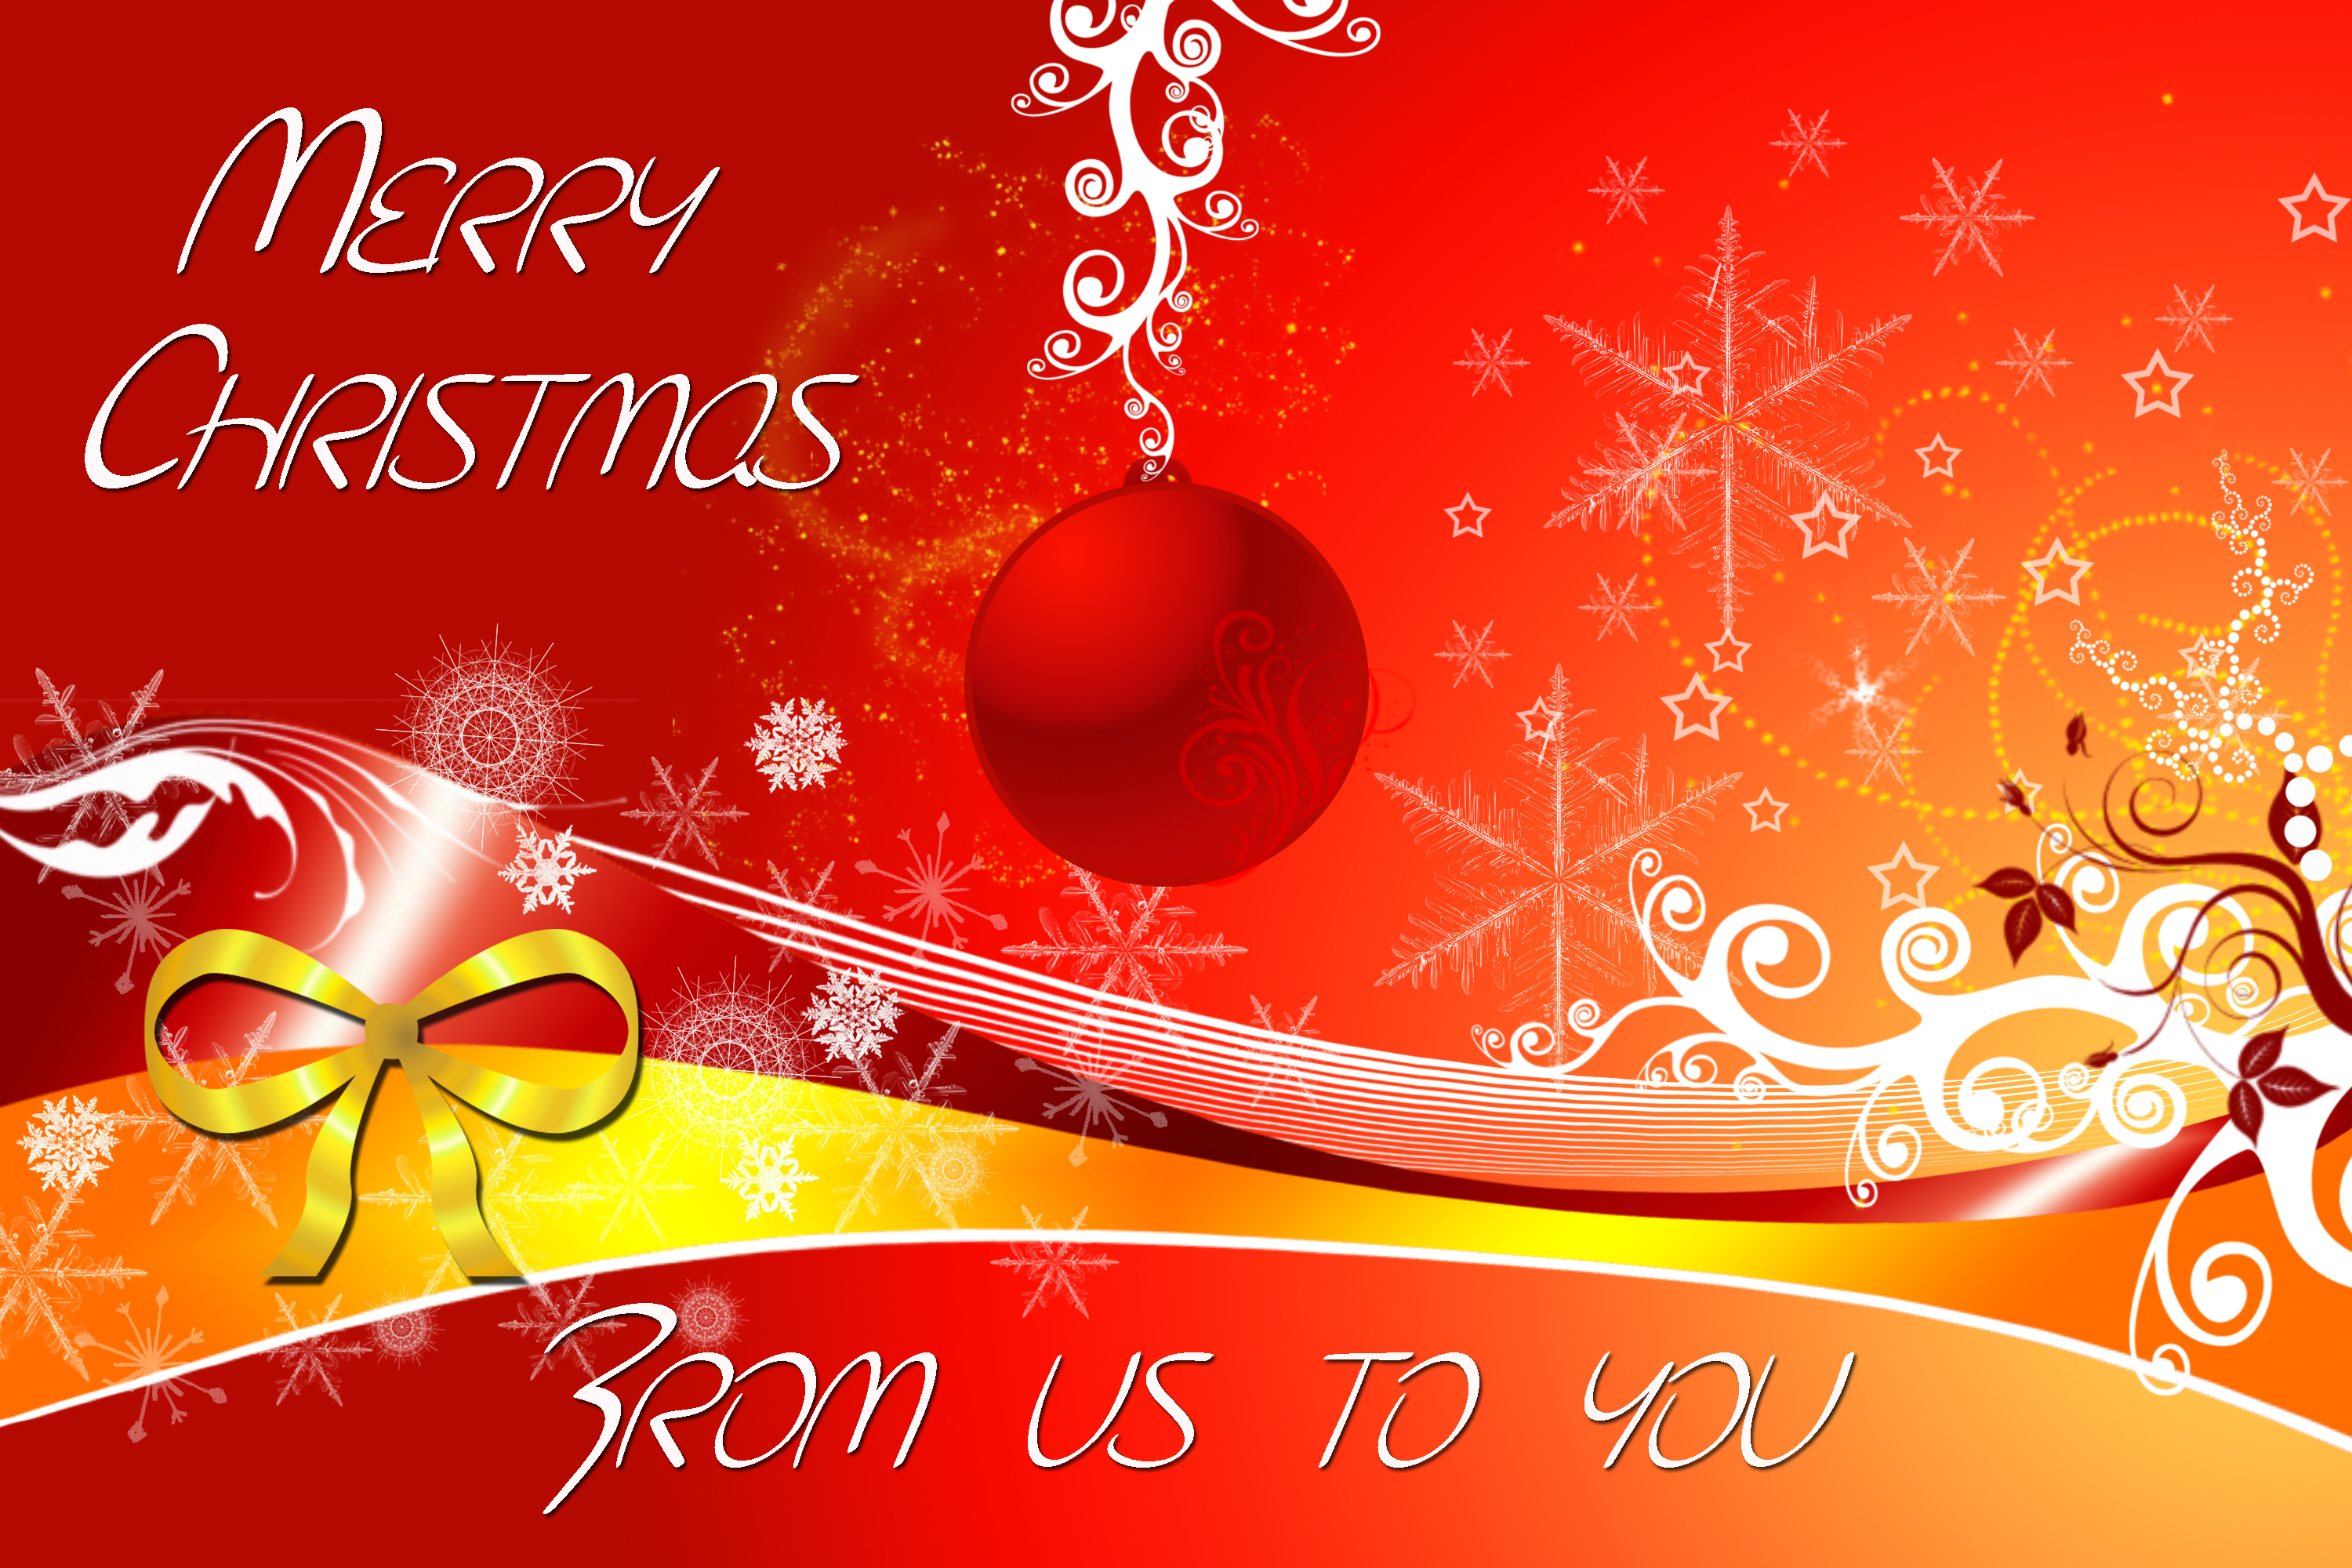 [img width=1024 height=683]http://simplyfusion.files.wordpress.com/2007/11/merry-christmas.jpg[/img]